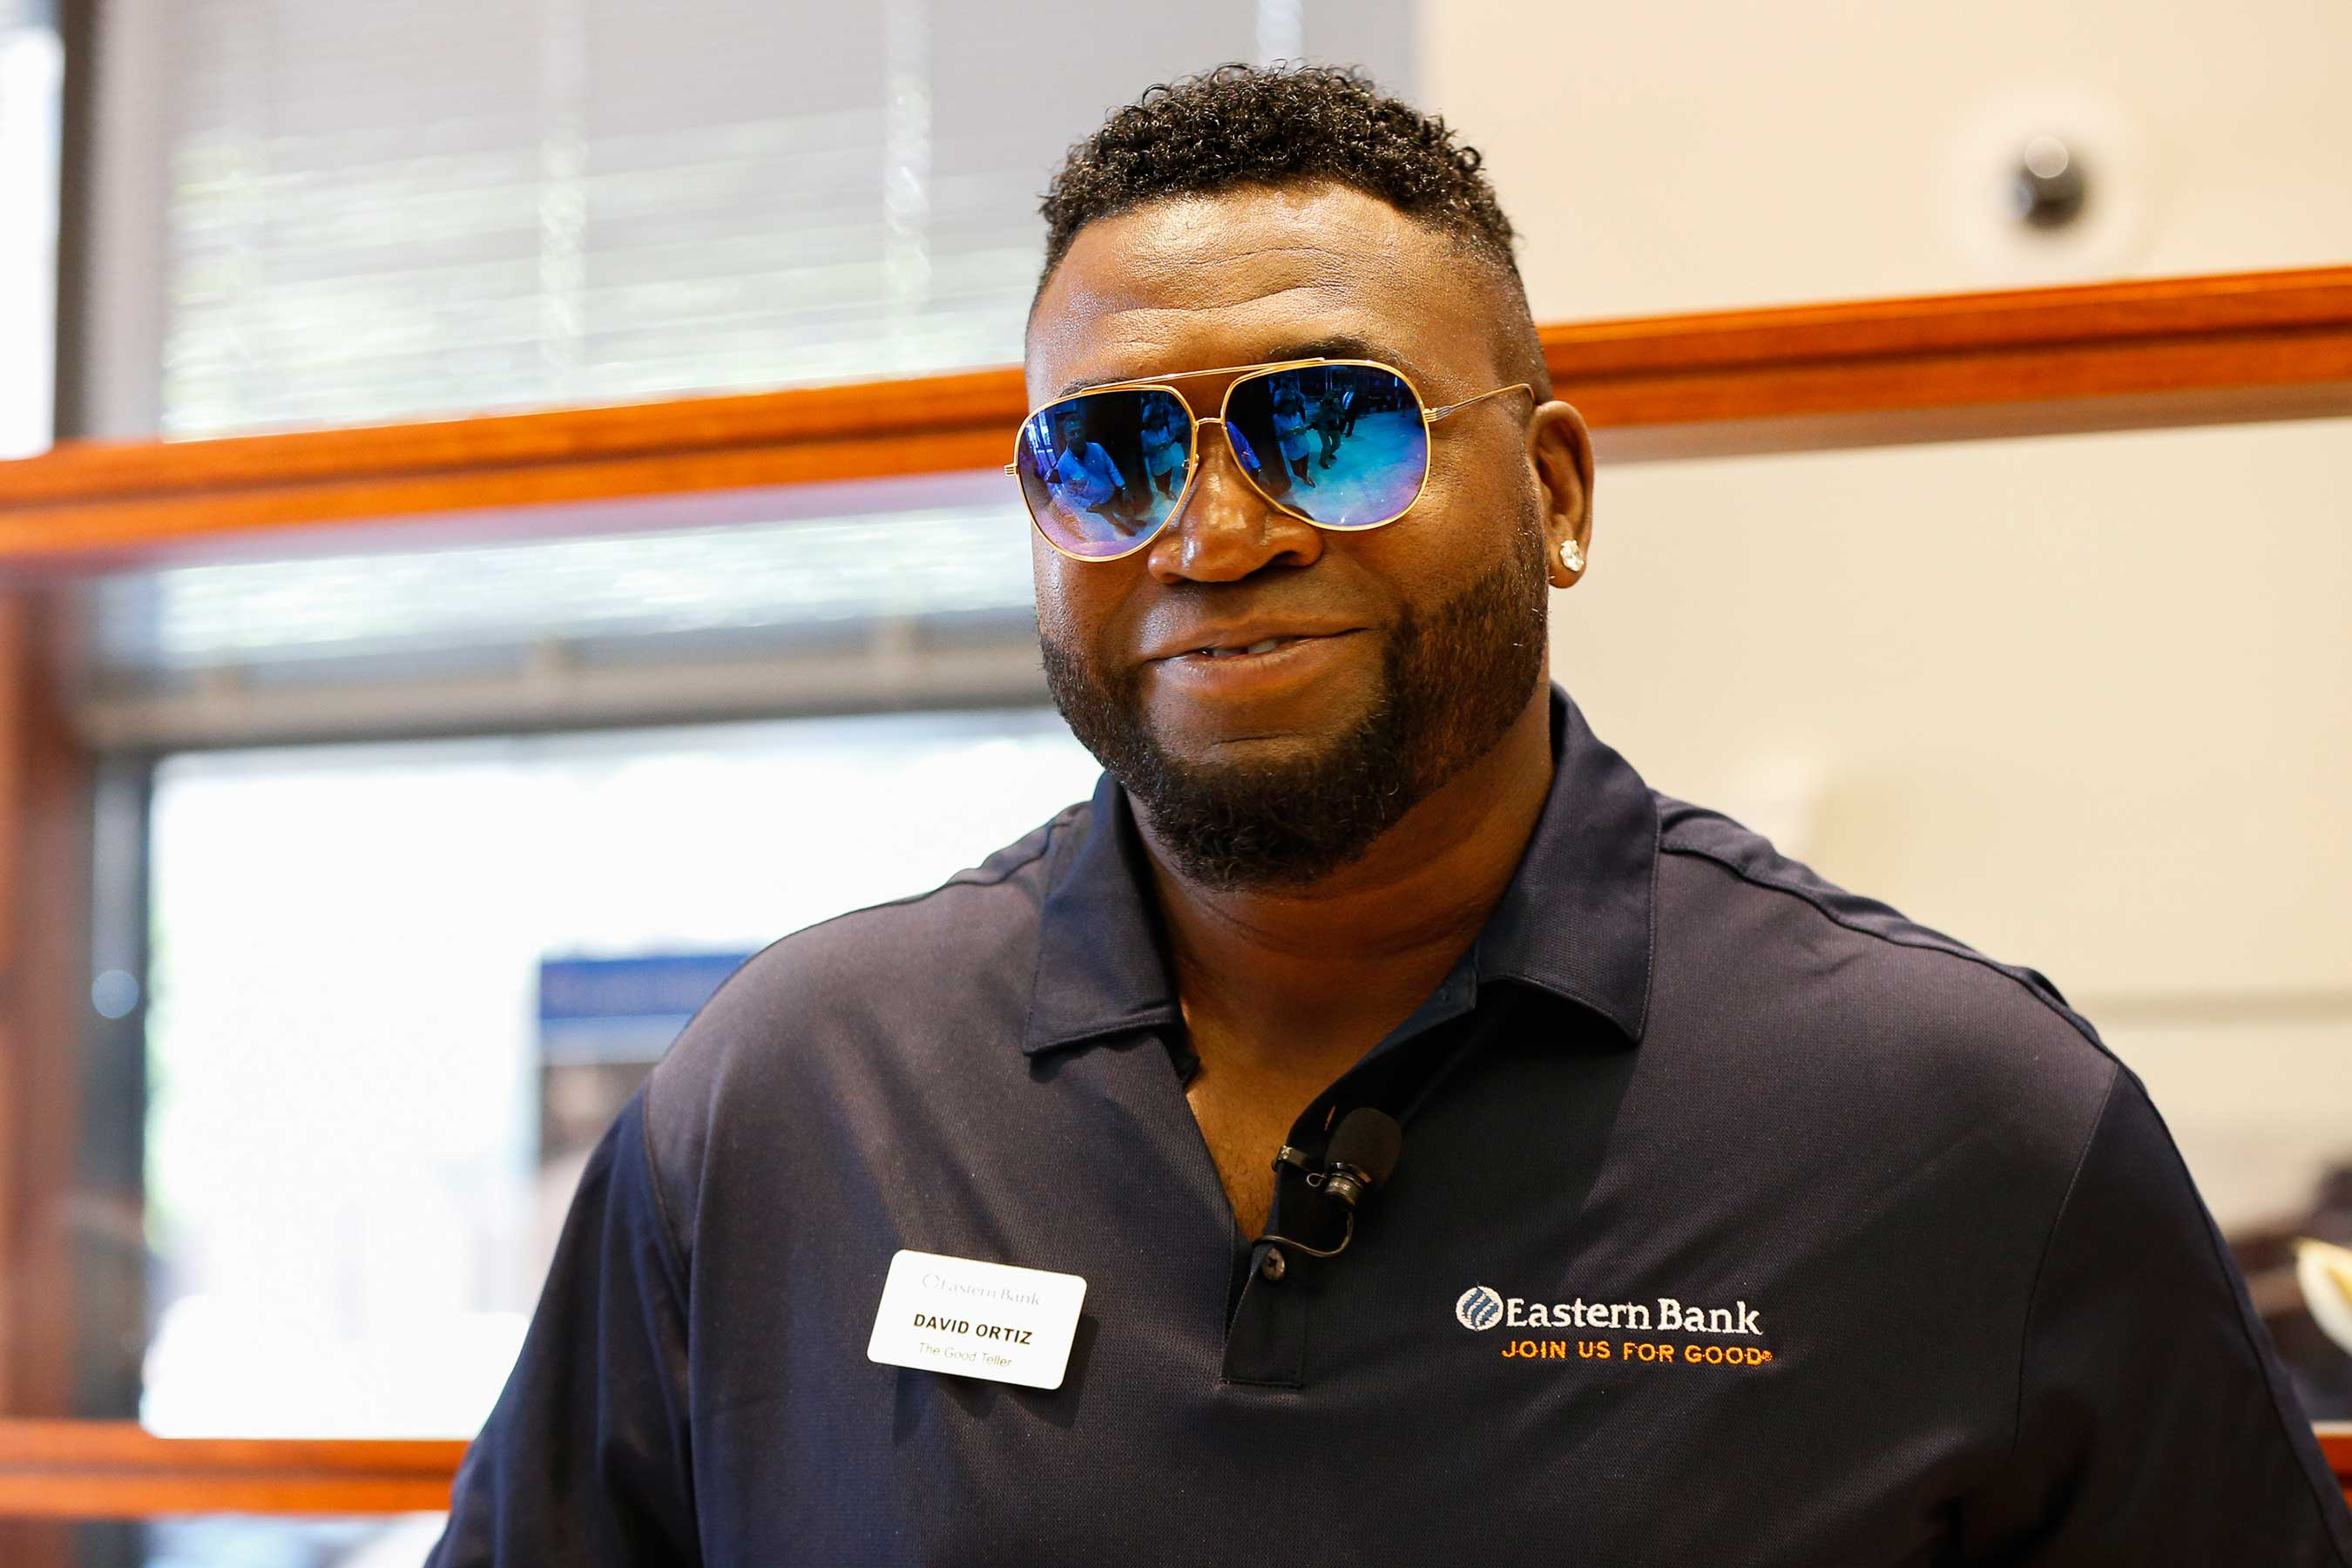 "David Ortiz steps out of retirement for a day to serve as Eastern Bank's ""Good Teller,"" as part of its Join Us For Good movement."